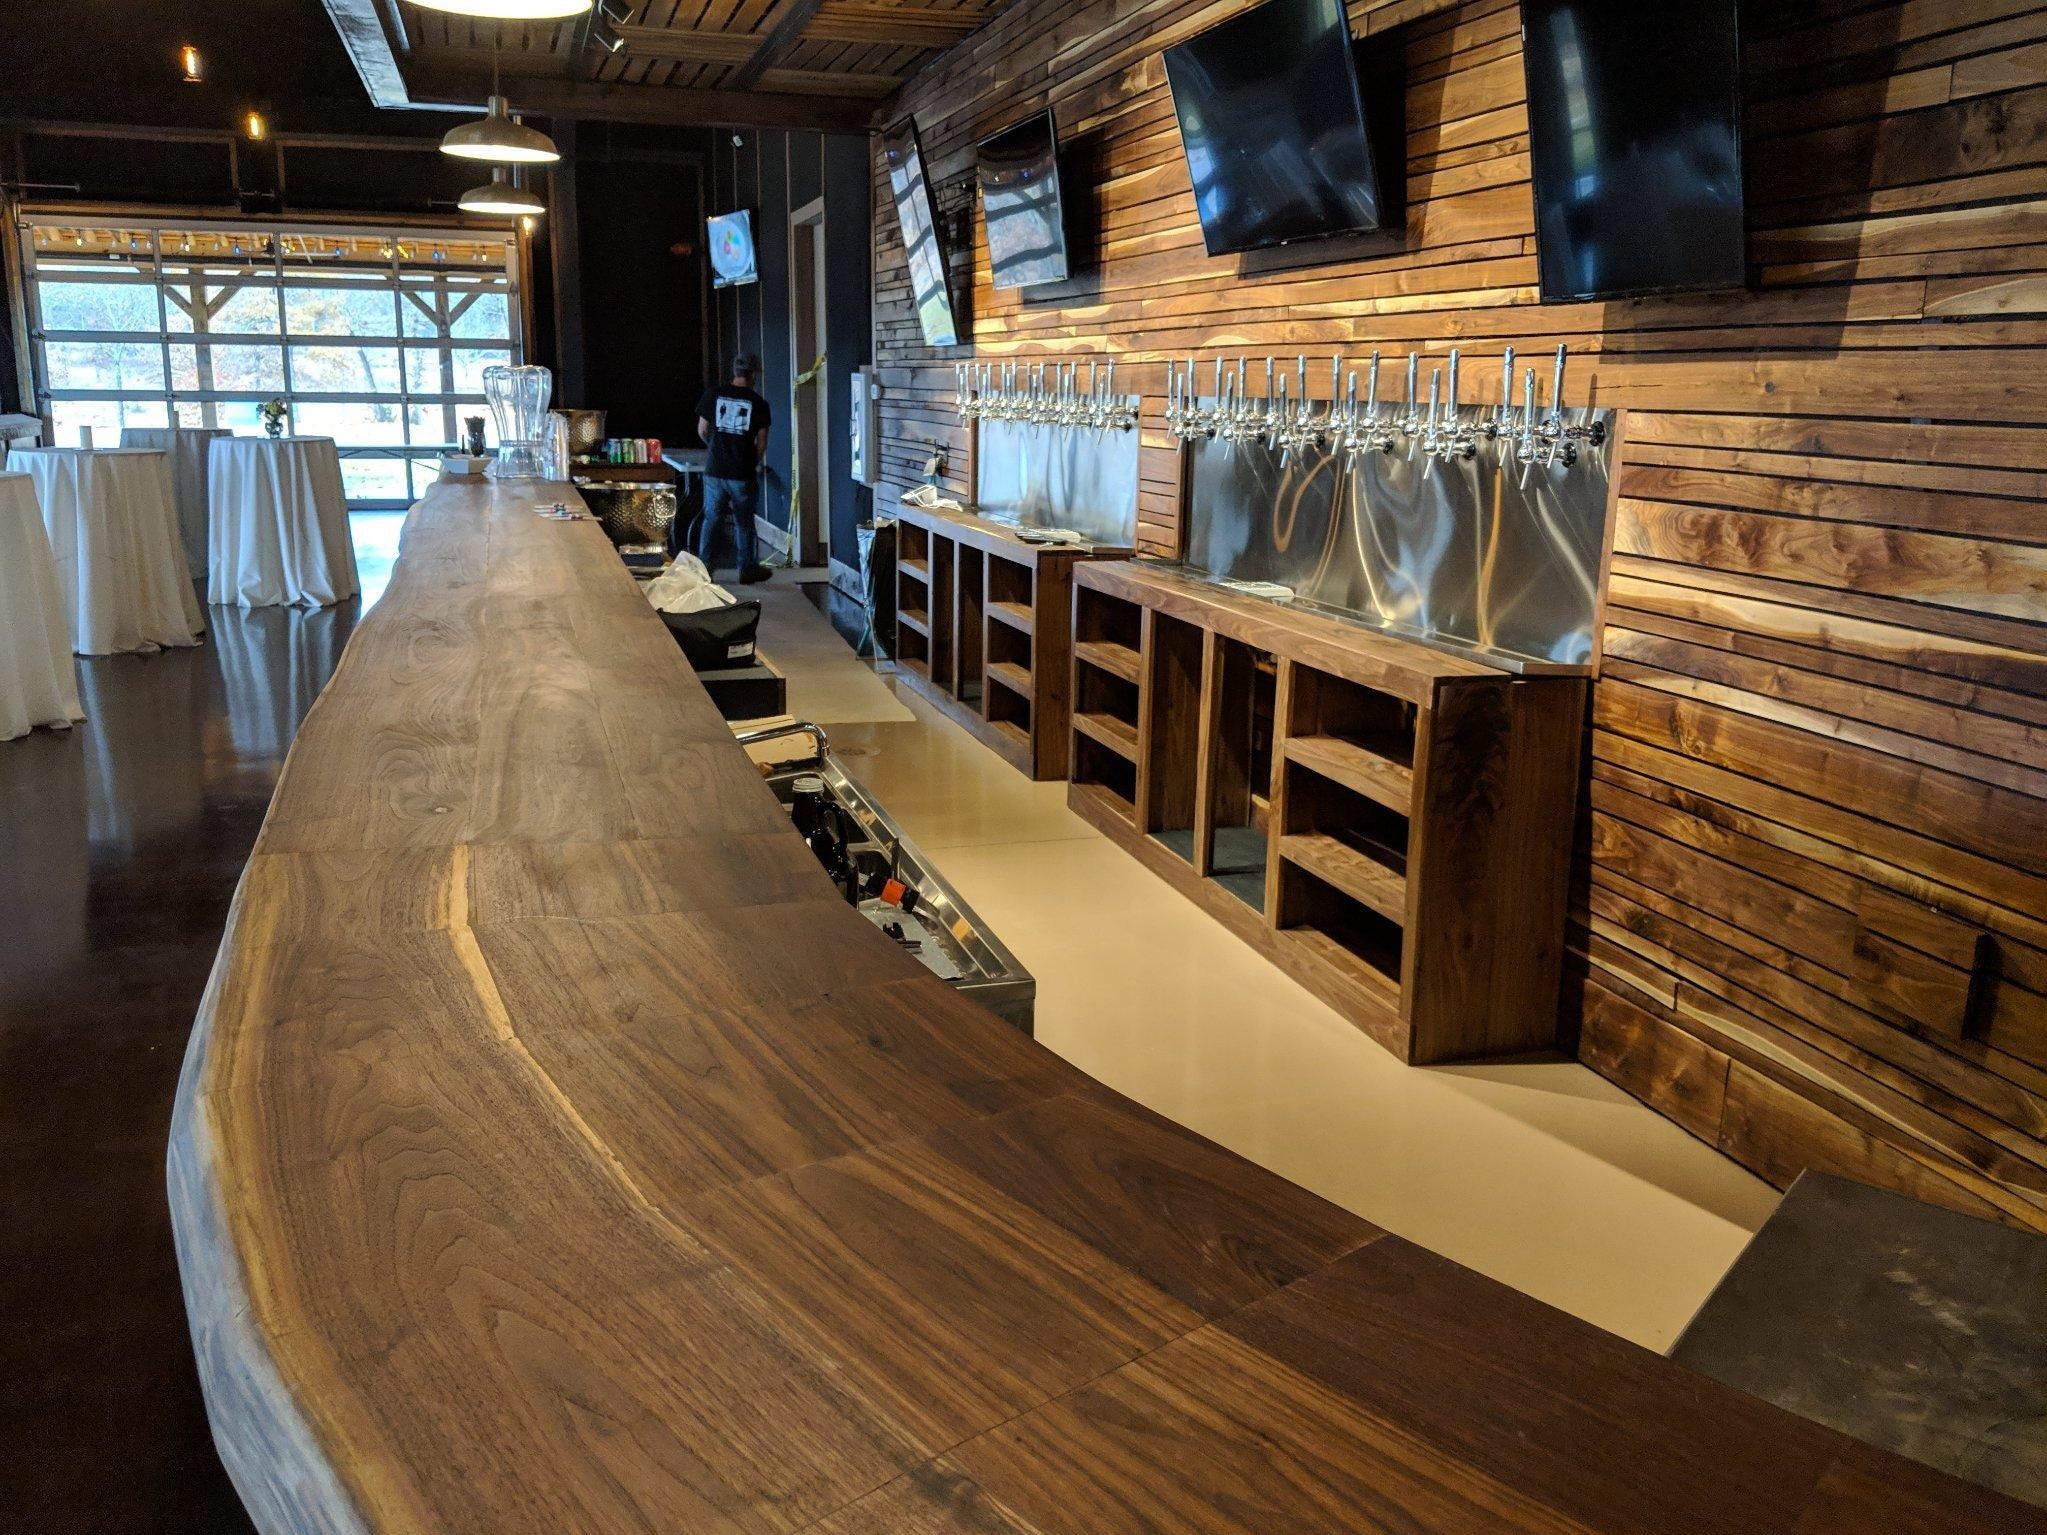 Walnut used in the interior of Hop Springs Taproom was milled on site from trees harvested at the 83-acre property.